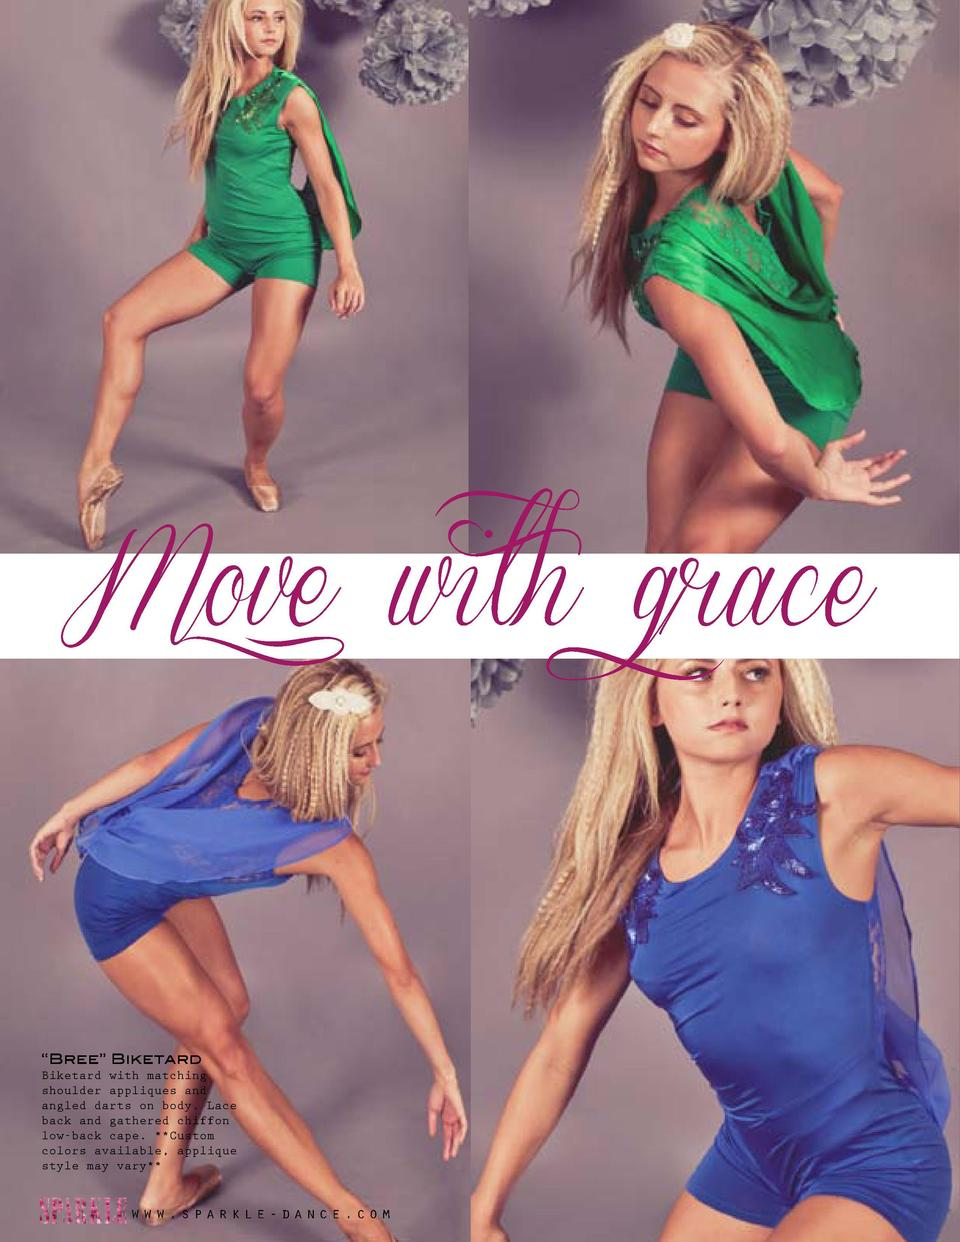 Move with grace     Bree    Biketard Biketard with matching shoulder appliques and angled darts on body. Lace back and gat...